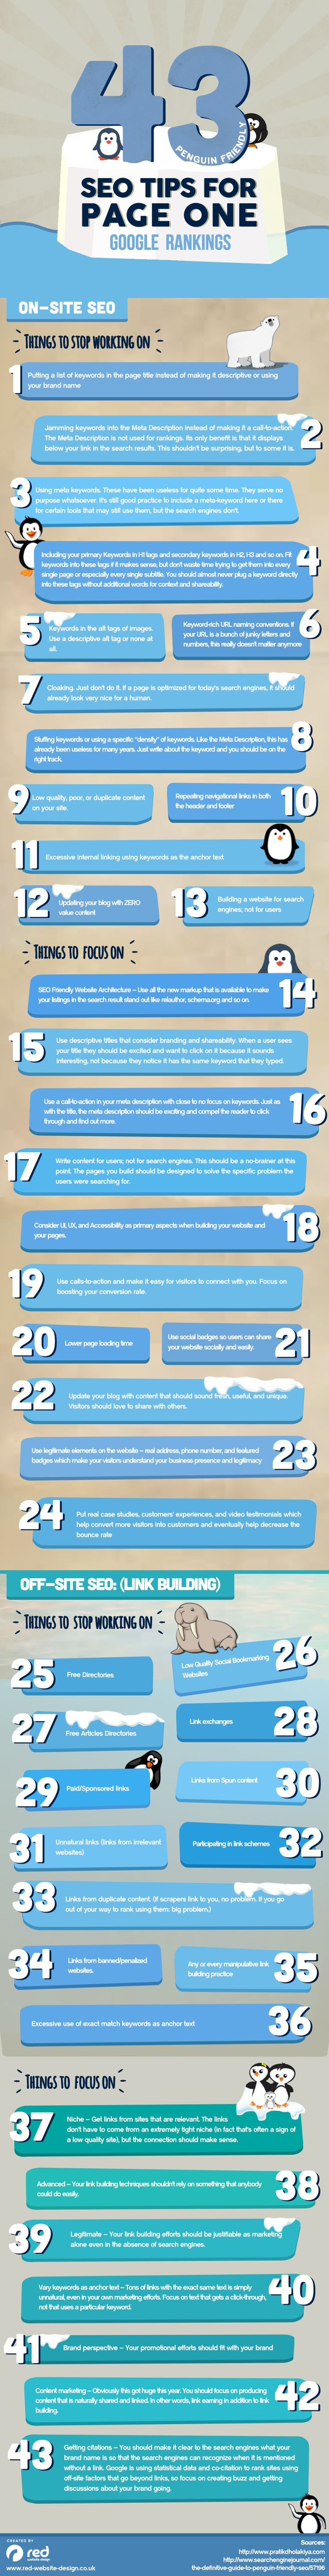 43 #SEO tips for page one Google rankings #Infographic